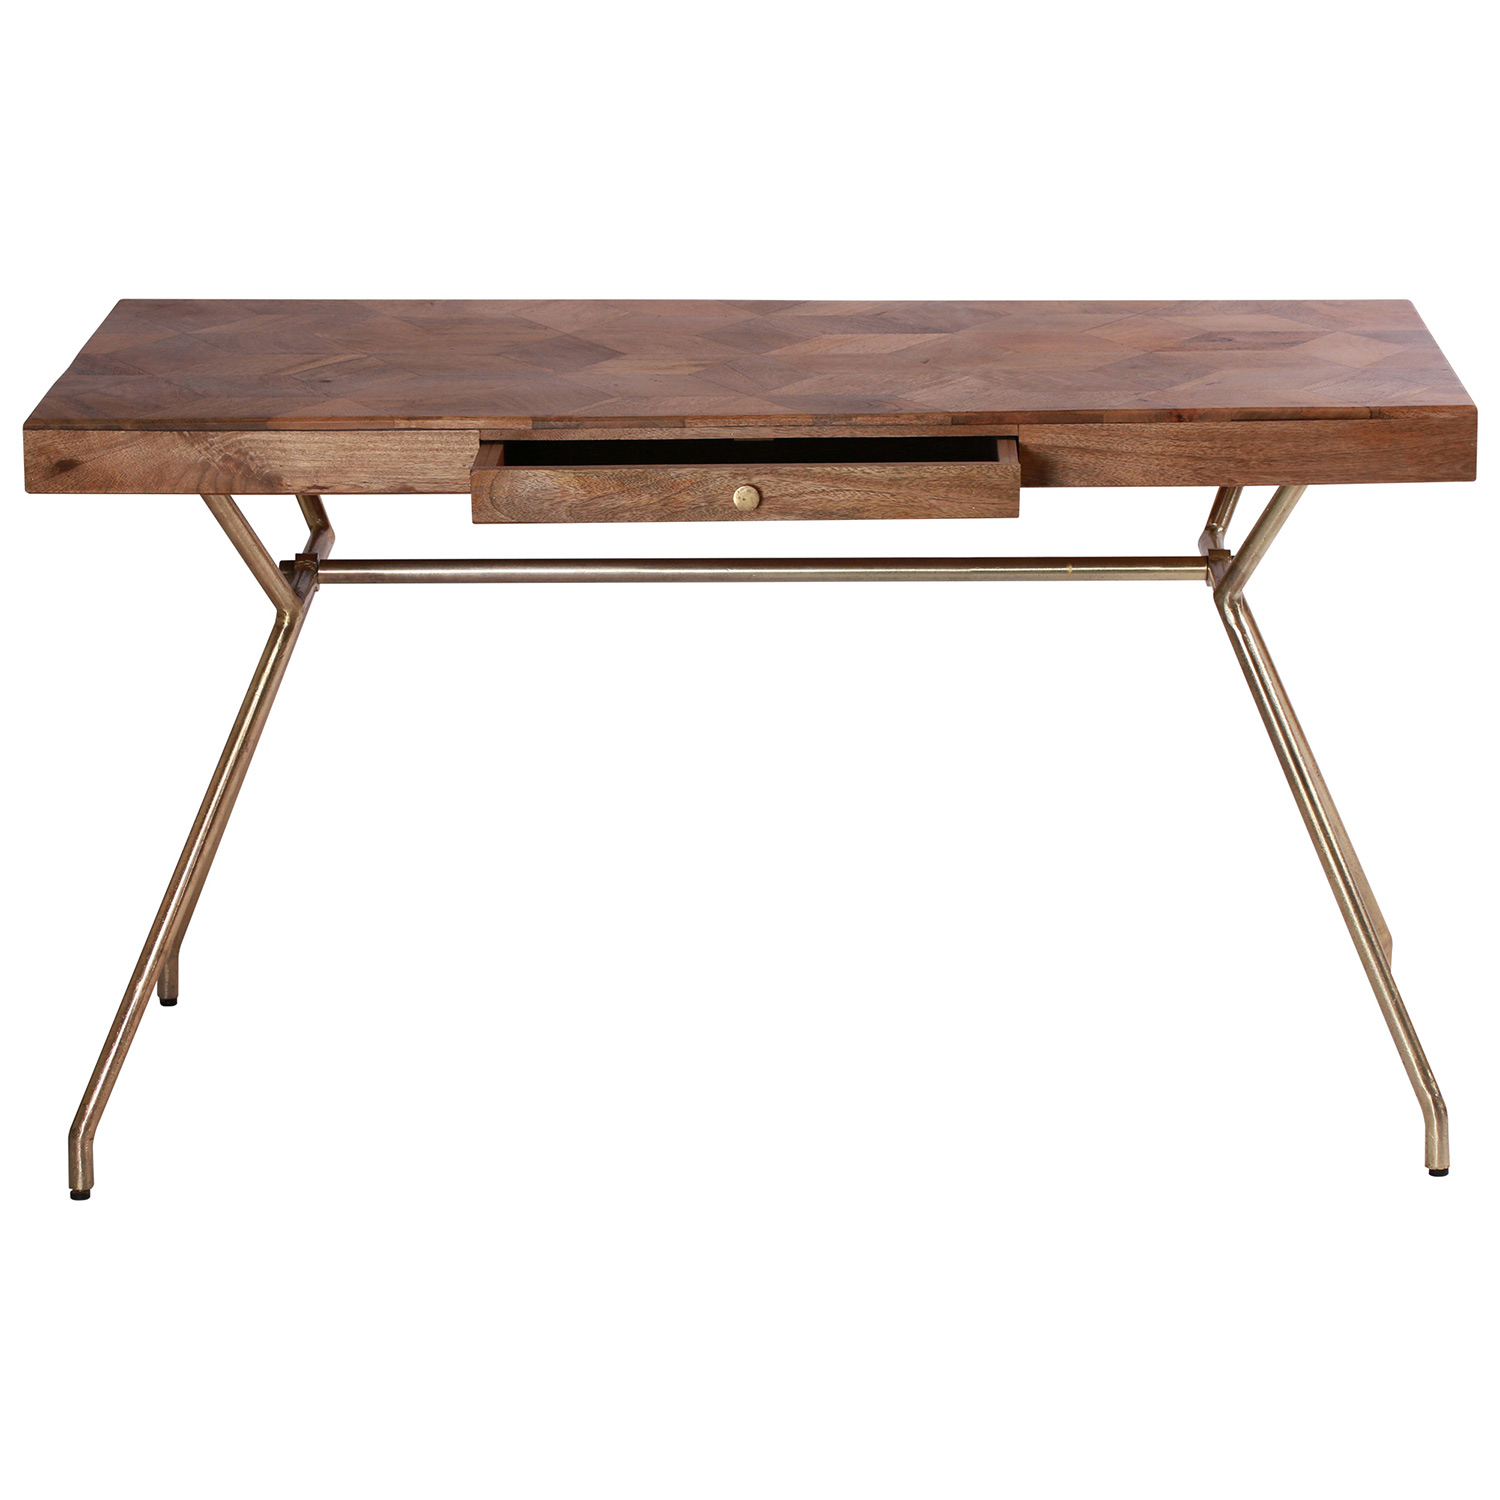 Ren-Wil Adams Accent table - Natural/Brass Plated